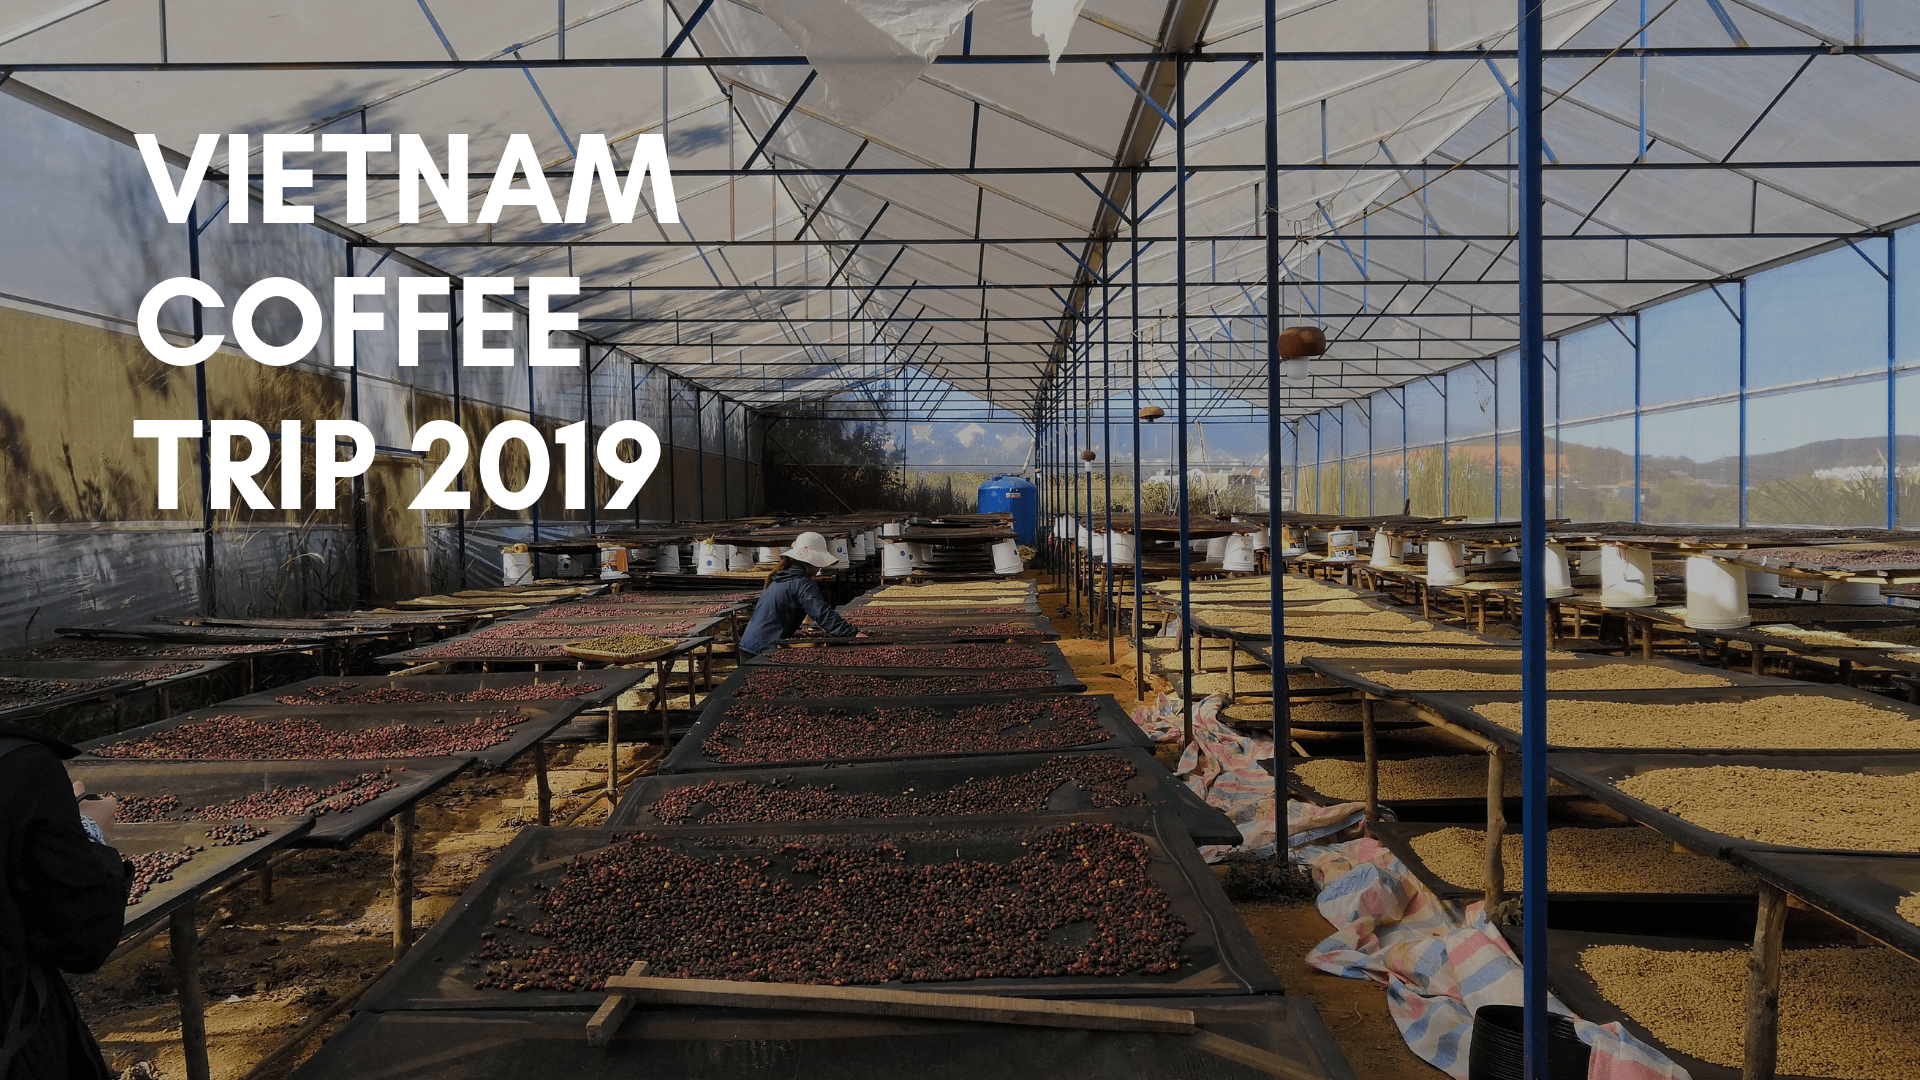 Vietnam Coffee Trip 2019